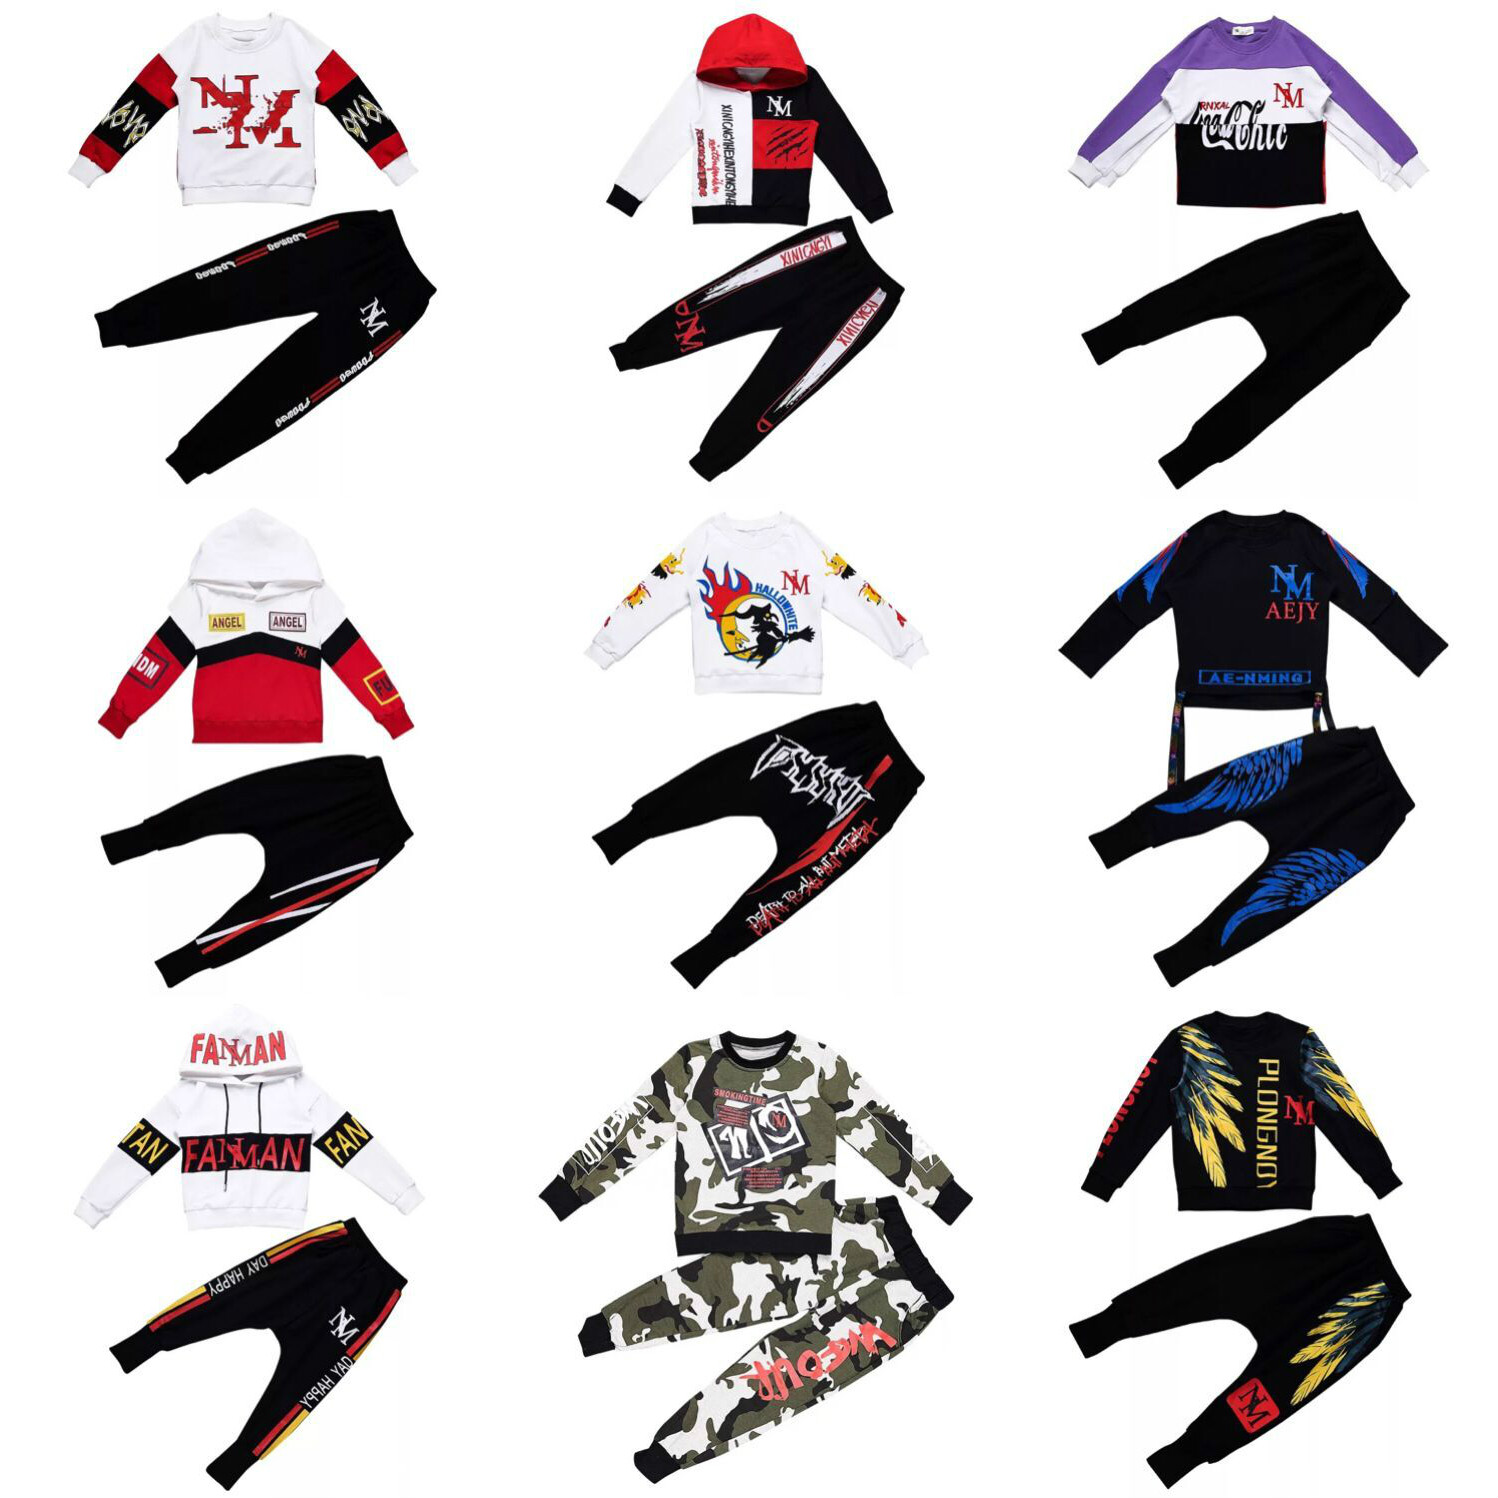 Kids Sport Suits Boys Hip Hop Dance Sets New Fashion Children Clothing Set 3-15Yrs Boys Teens Hoodie Shirt Tops Pants CA4221 4 pieces new fashion print cool boys girls clothing set cotton t shirt hip hop dance pants sport clothes suits kids outfits